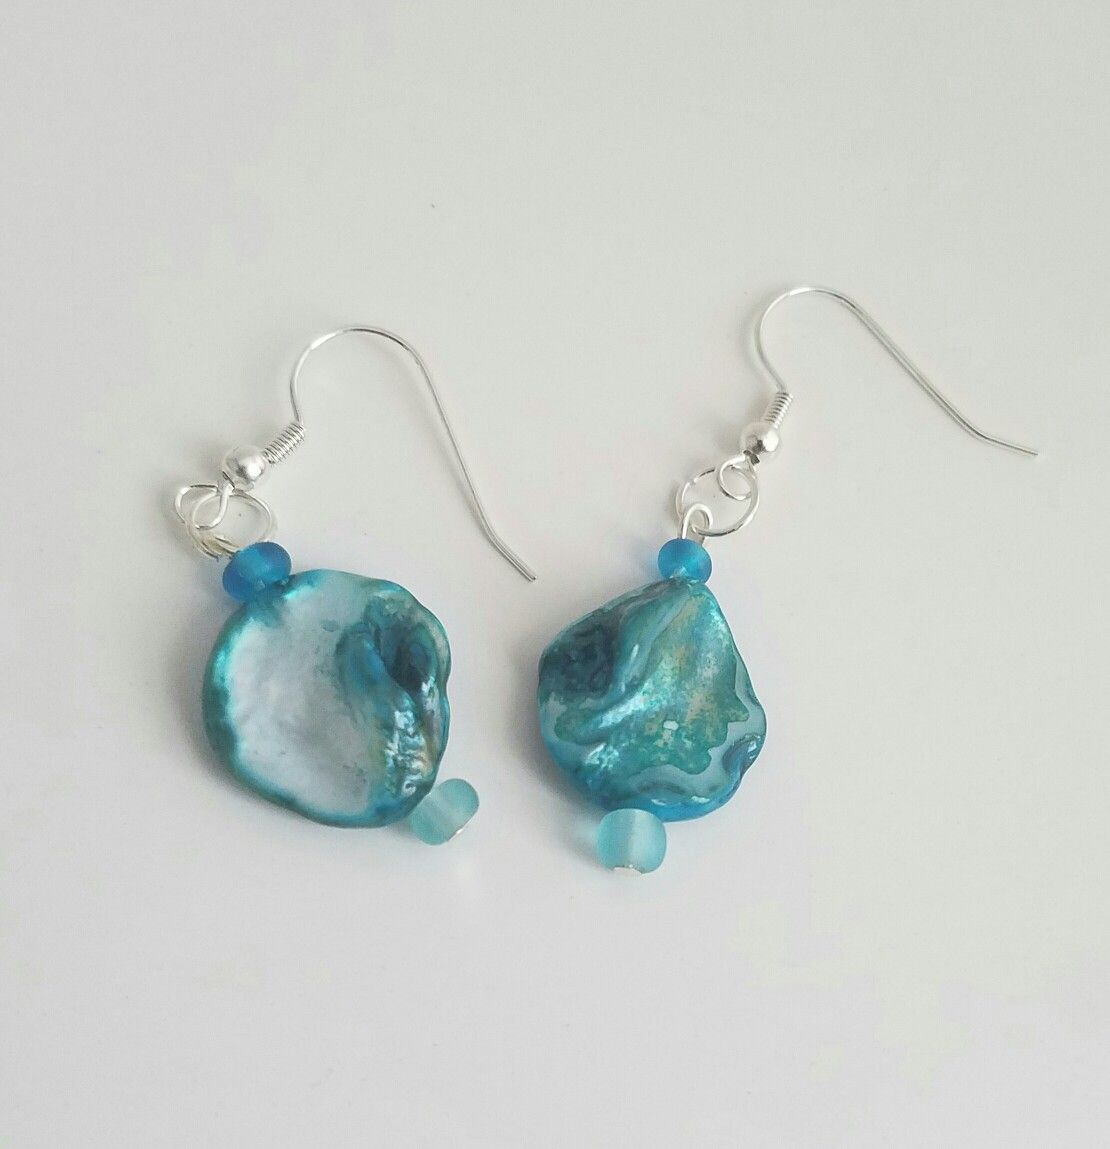 Mama's turquoise earrings, August 2016